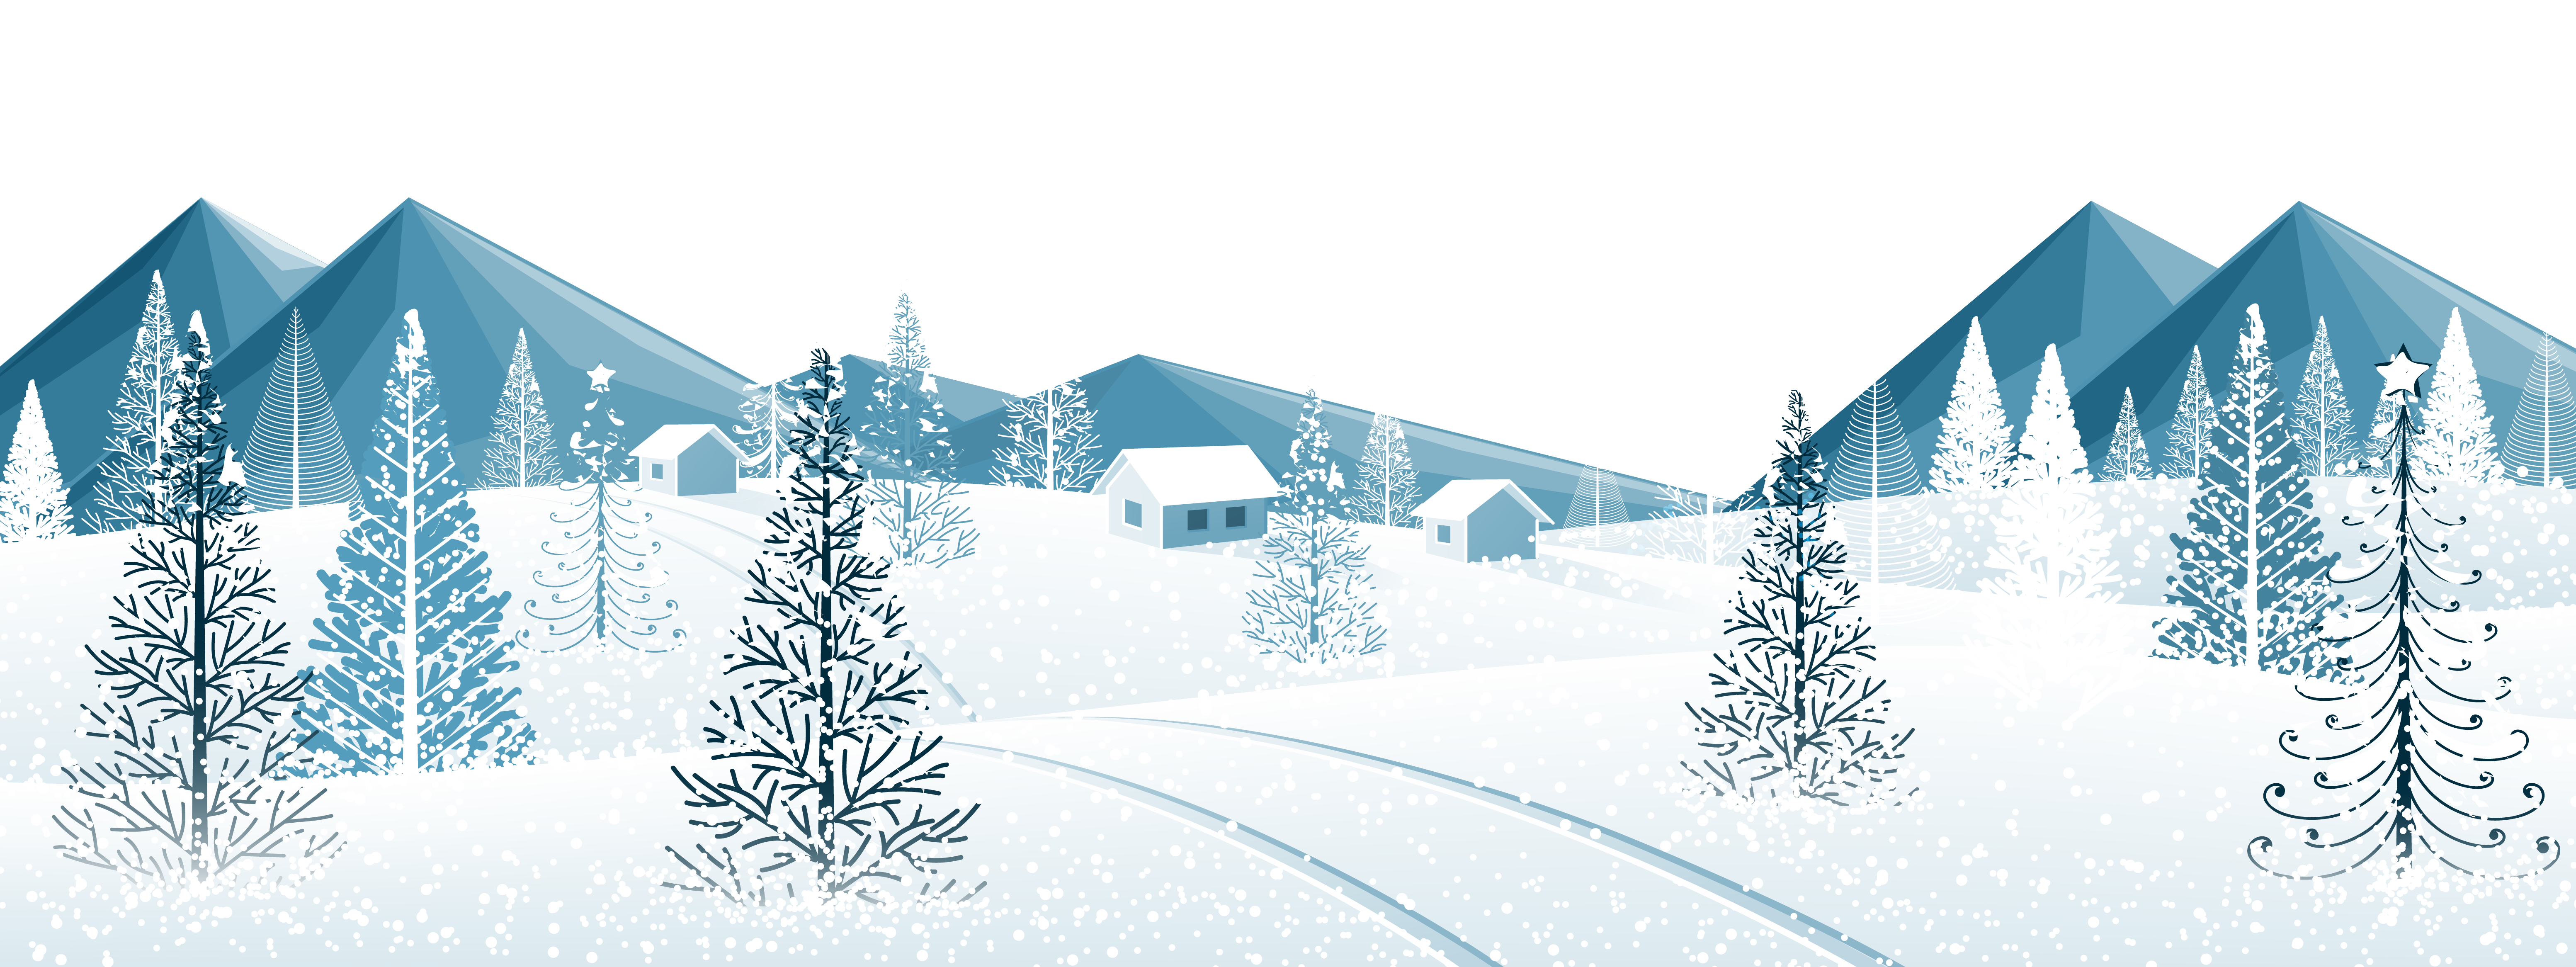 Ground with trees png. Nature clipart winter